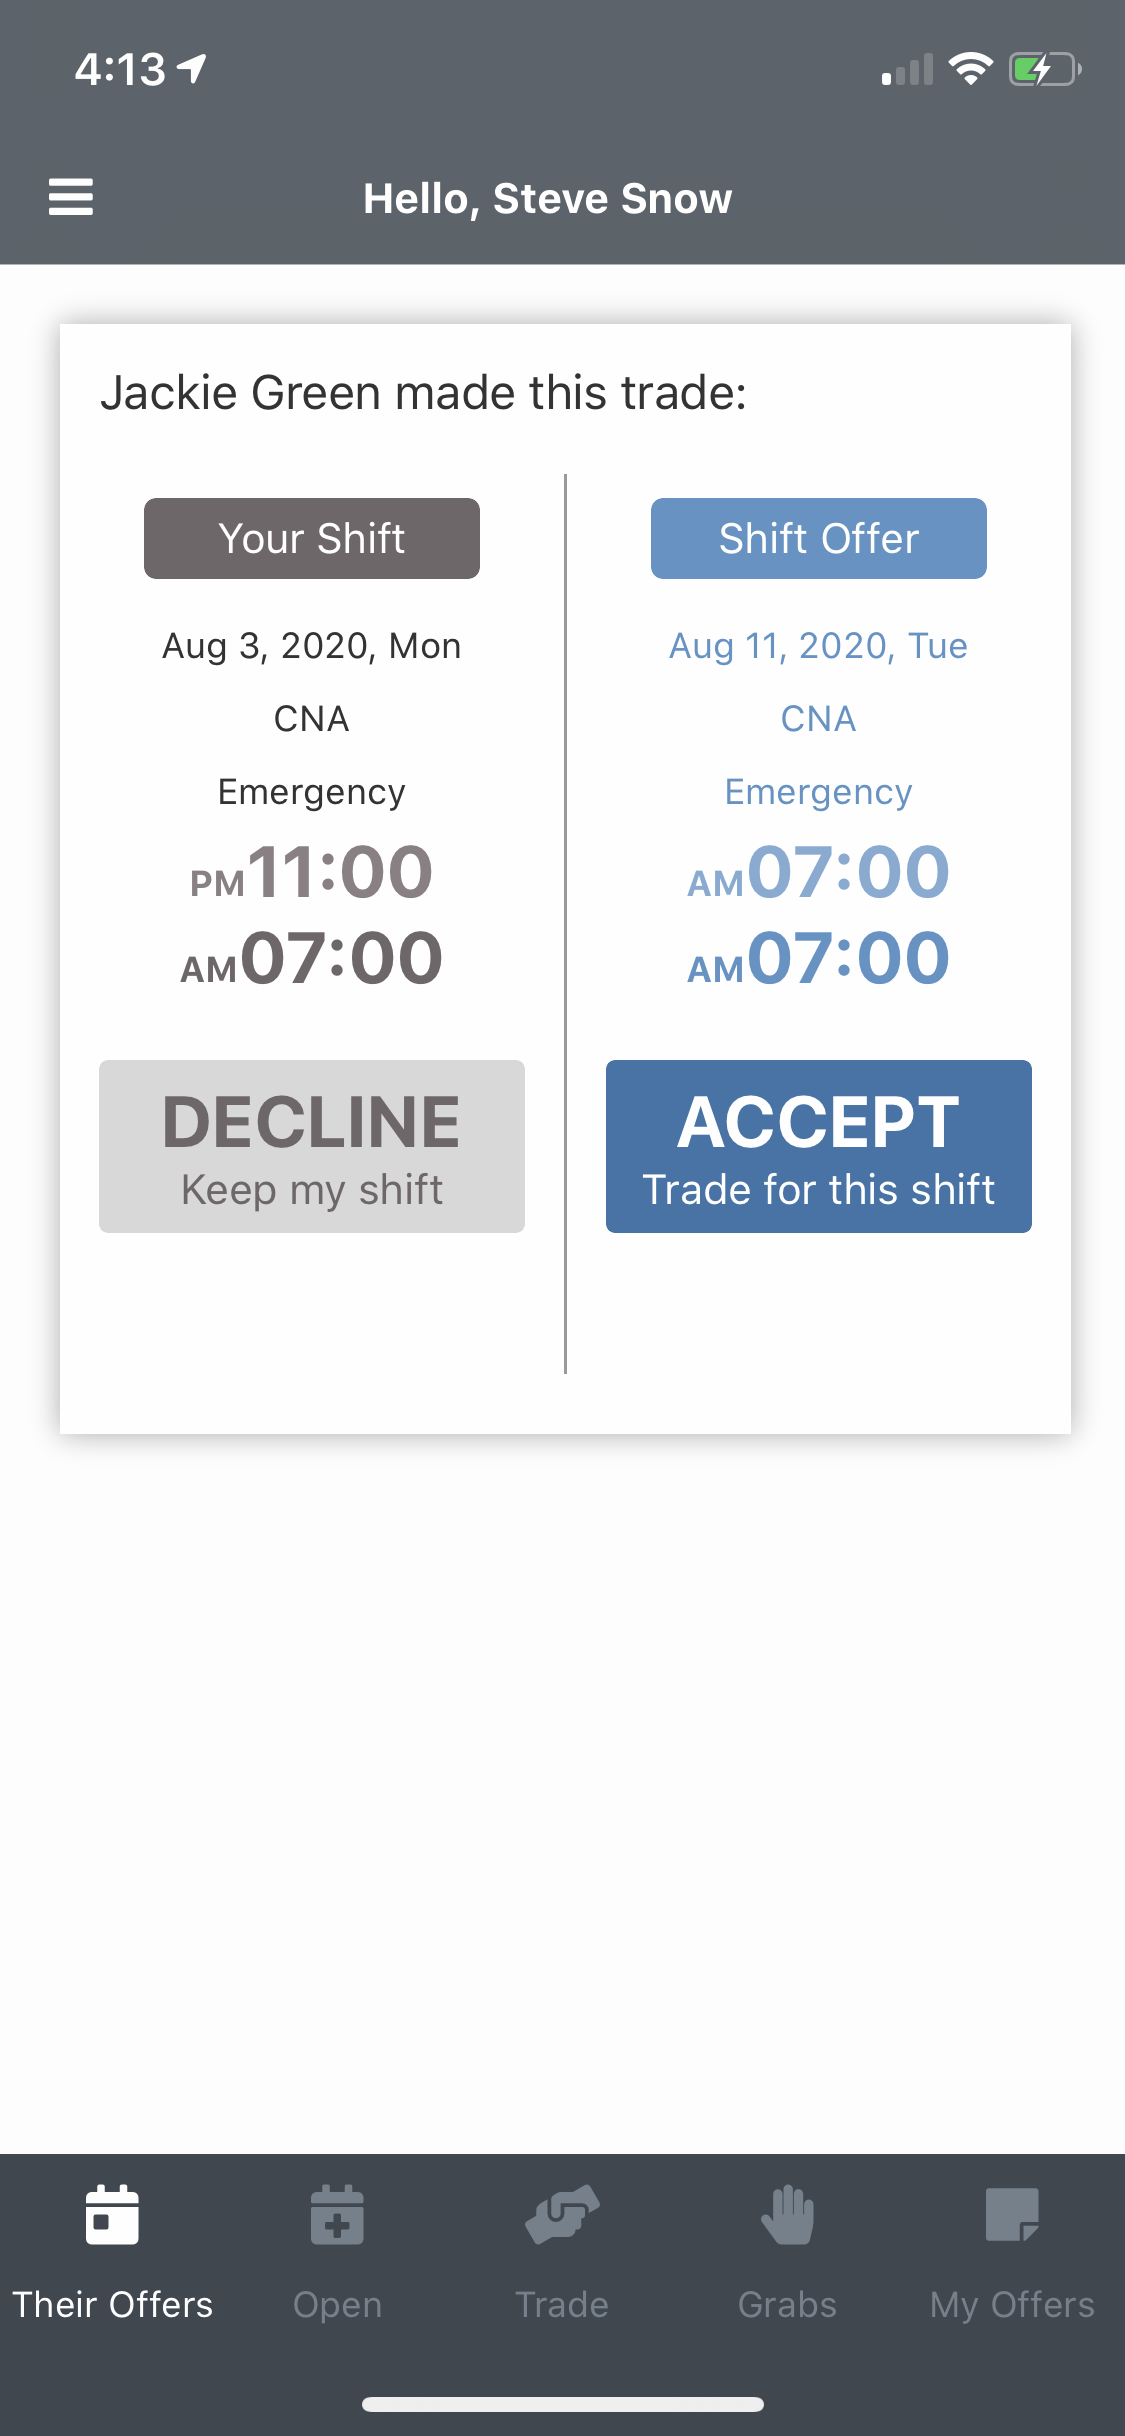 EasyShifts Software - Coworkers can perform their own trades right in the app